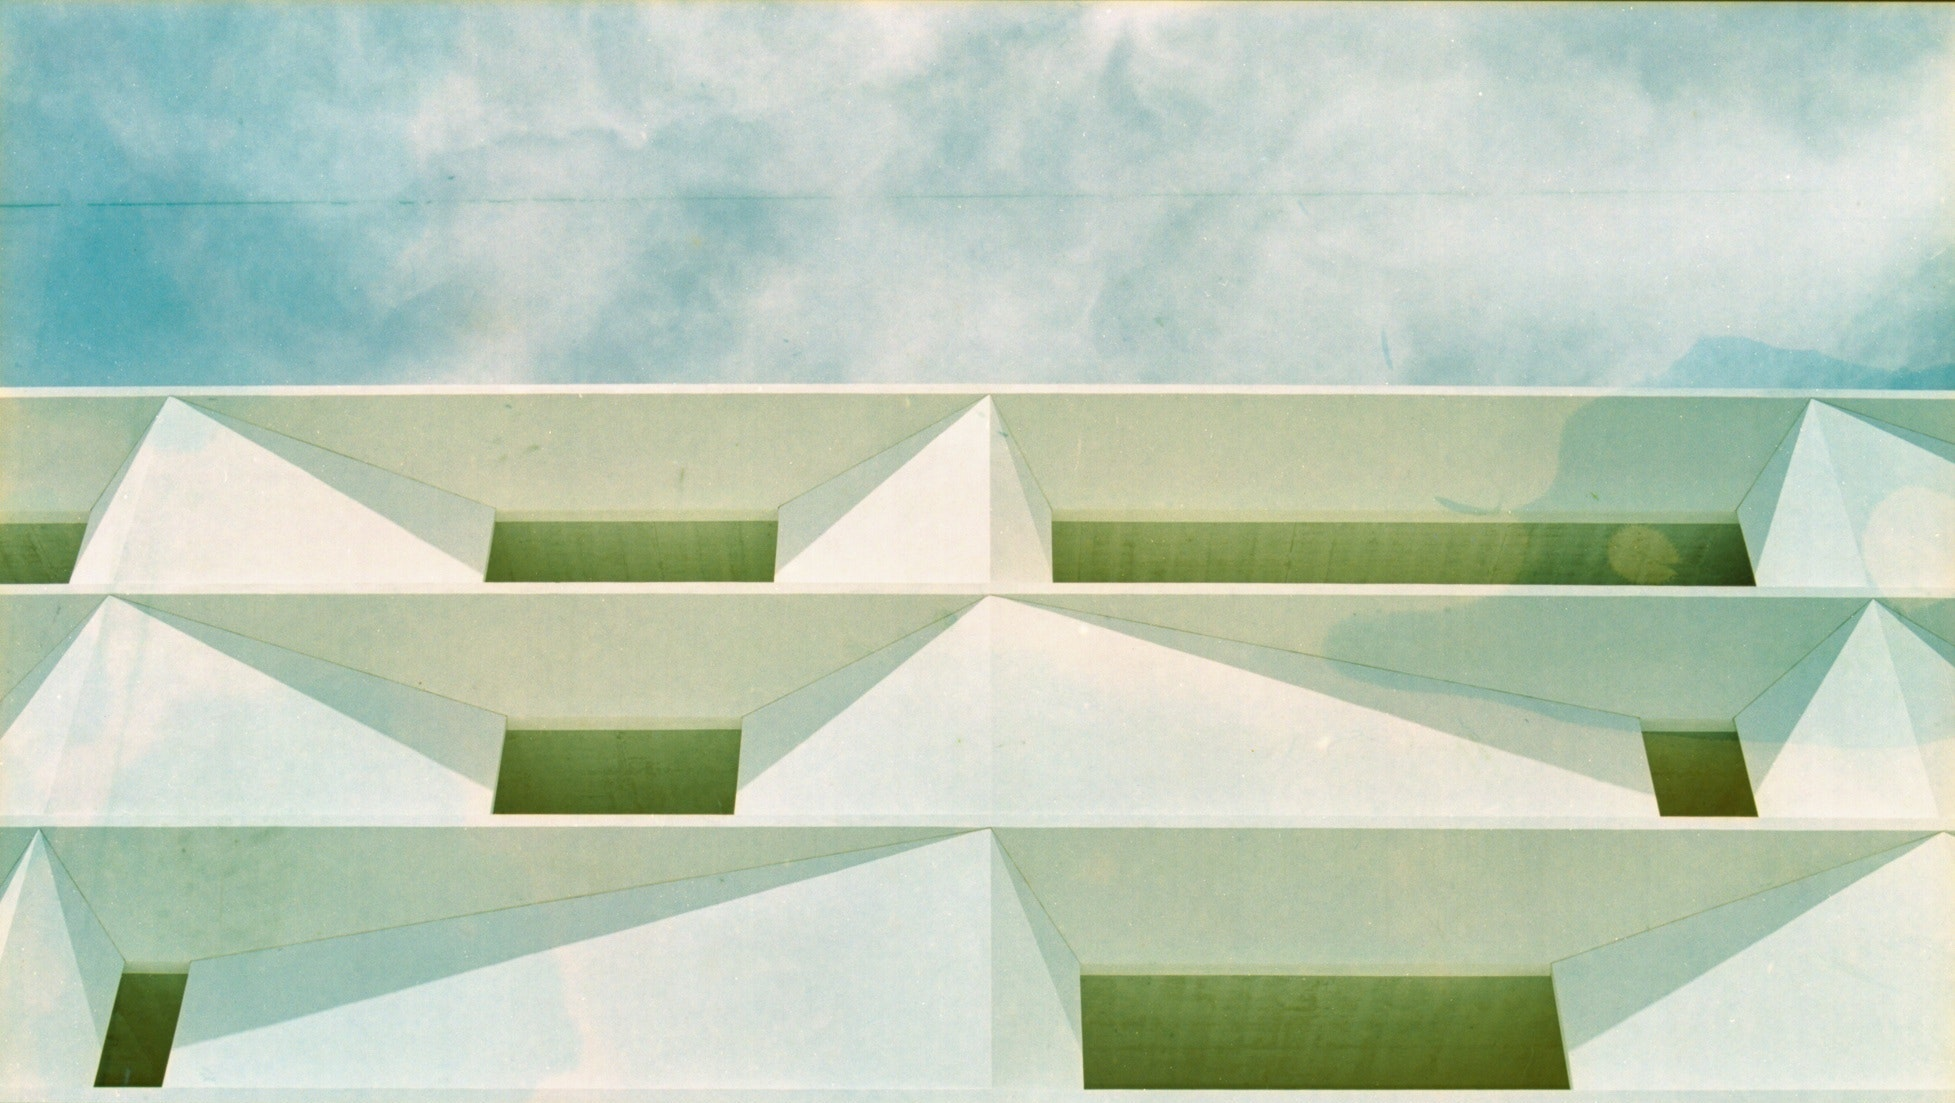 Portion of a facade of a contemporary building under a blue sky and clouds